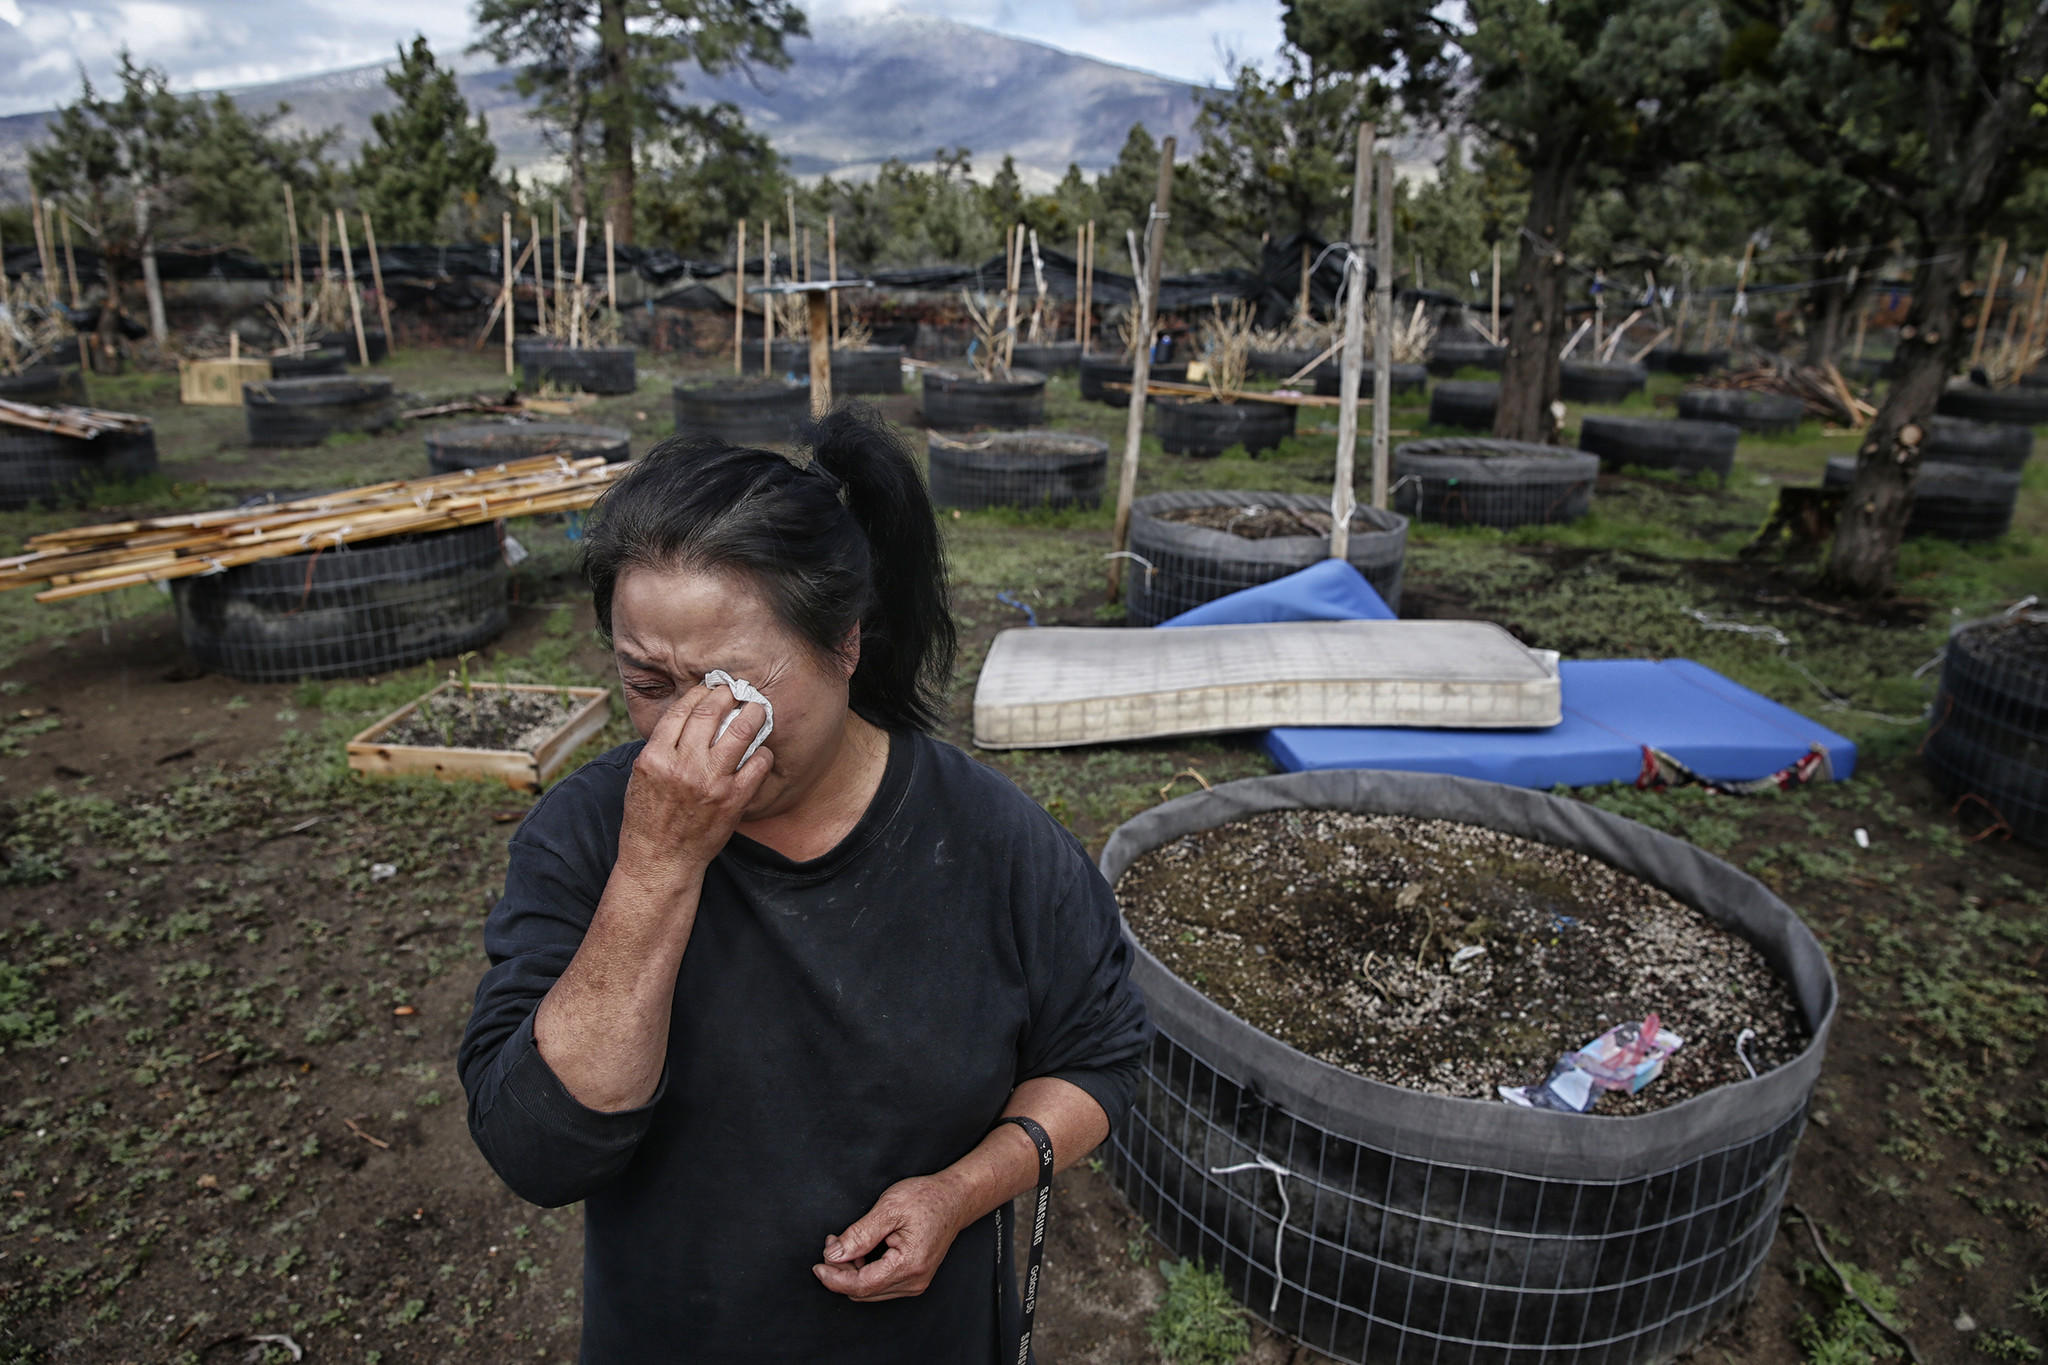 Bao Kelly Xiong weeps as she clears the belongings of her sister, Mee Xiong, from her Mt. Shasta Vista property. Mee died of asphyxiation last winter when she used charcoal in a pot to heat a small enclosure she bedded down in at night.